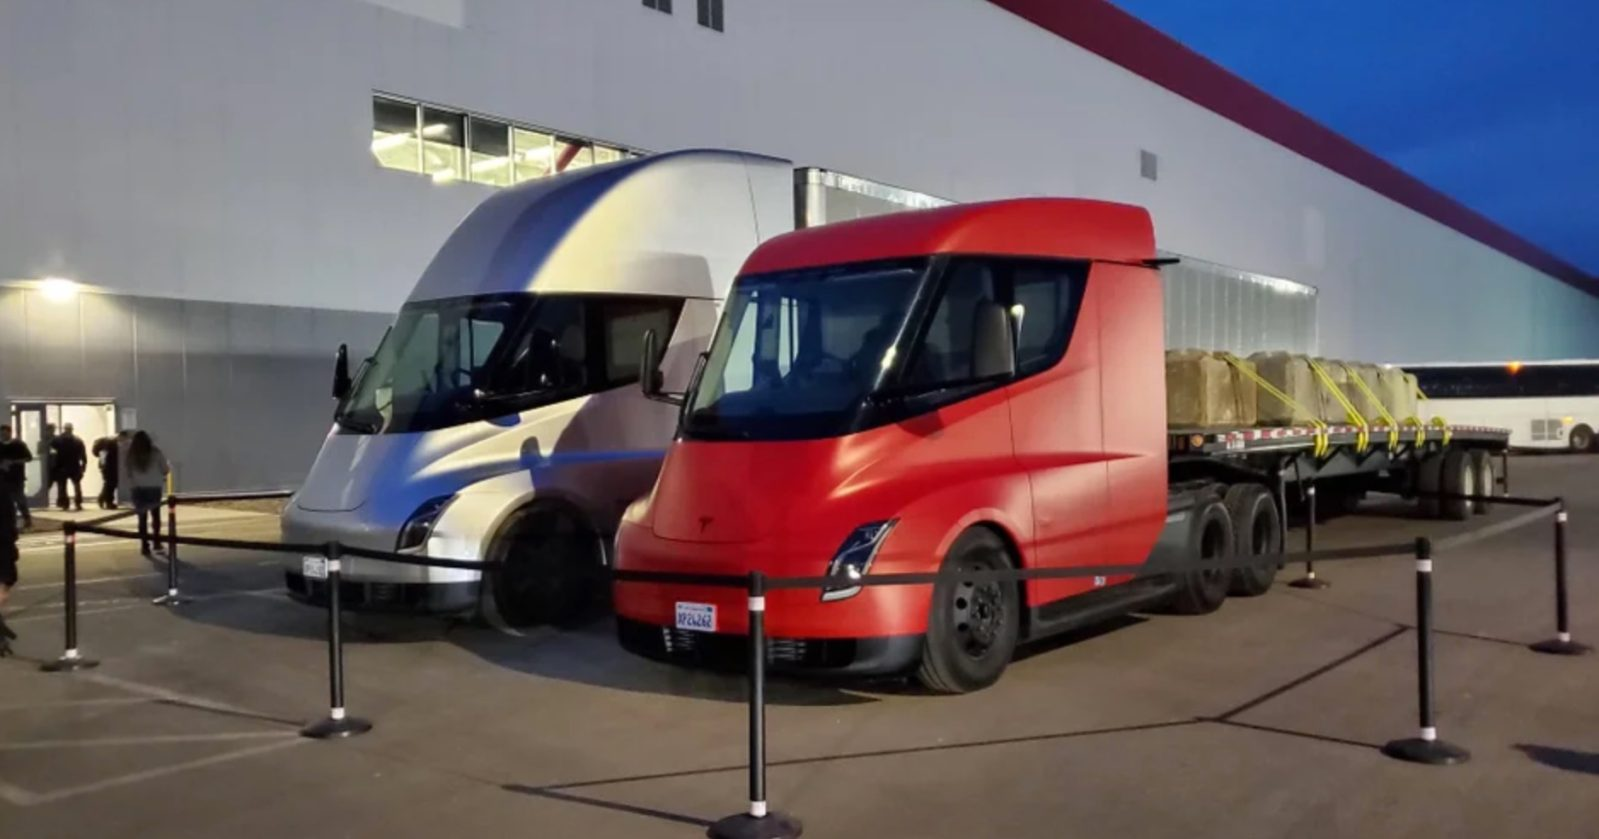 Tesla Semi electric truck production to start 'with limited volumes' in 2020